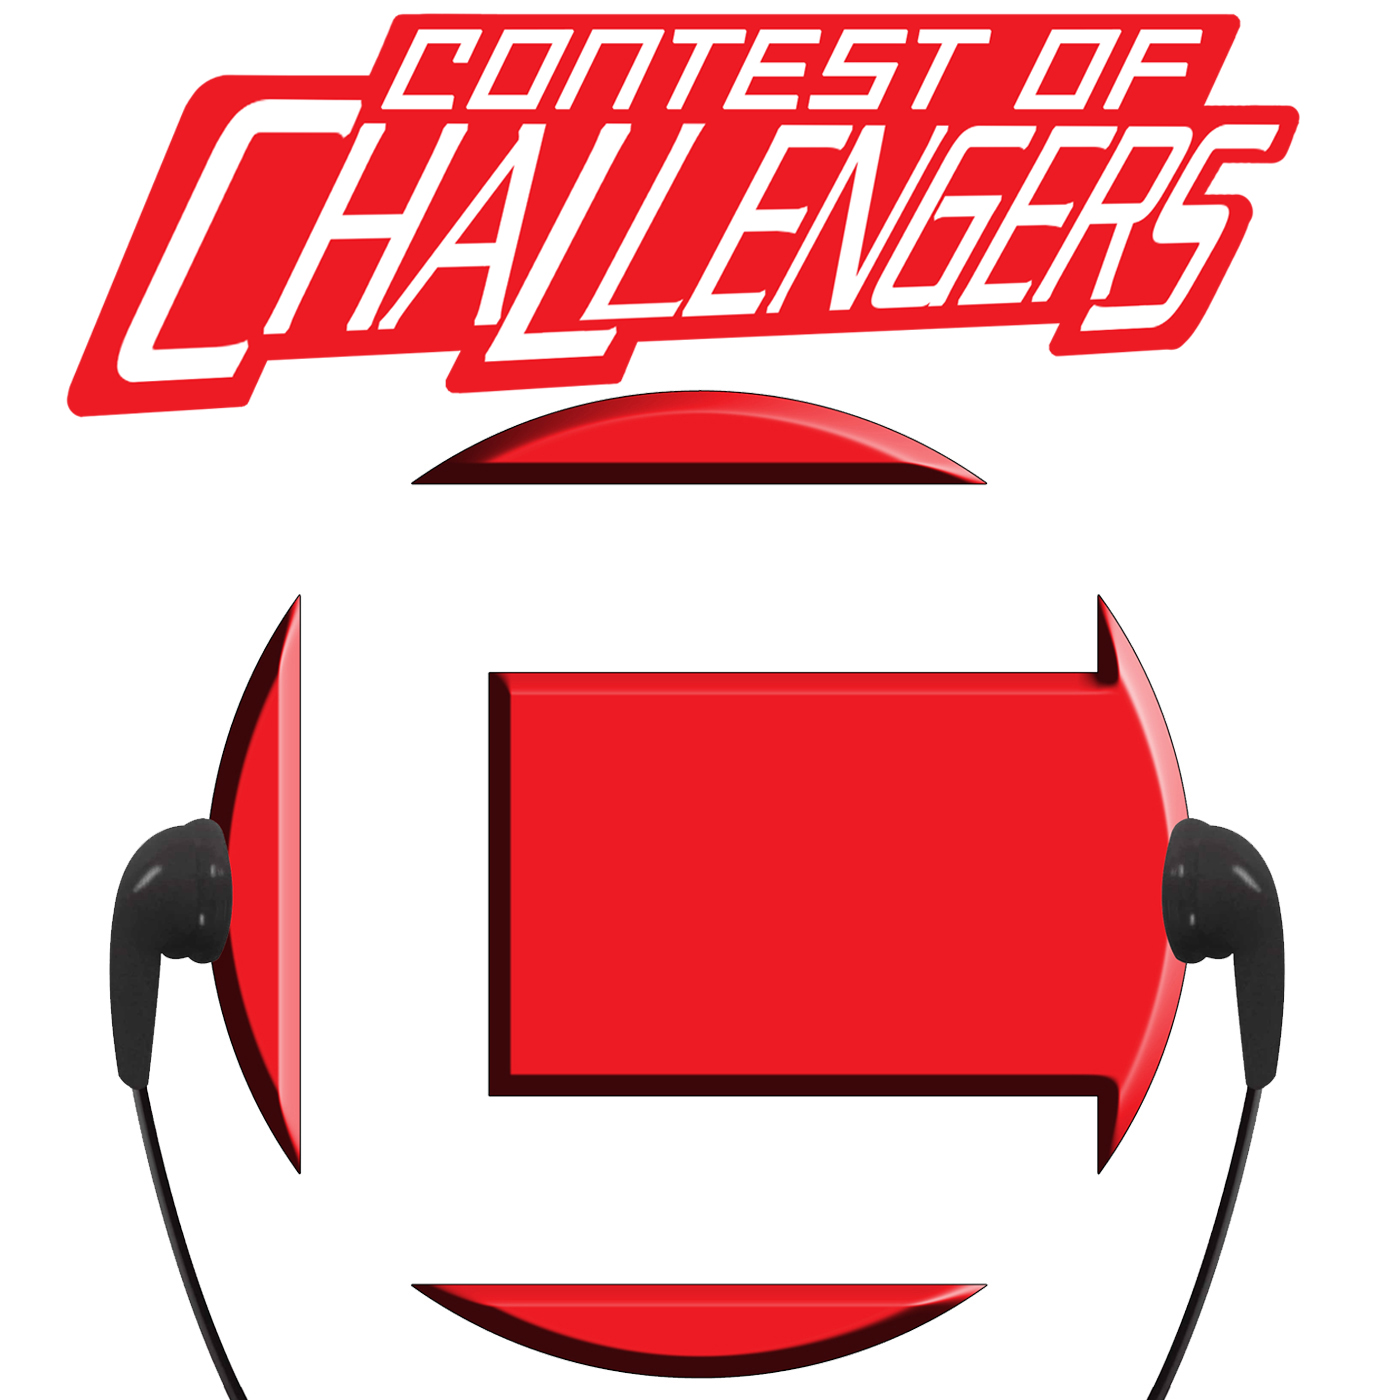 Contest of Challengers